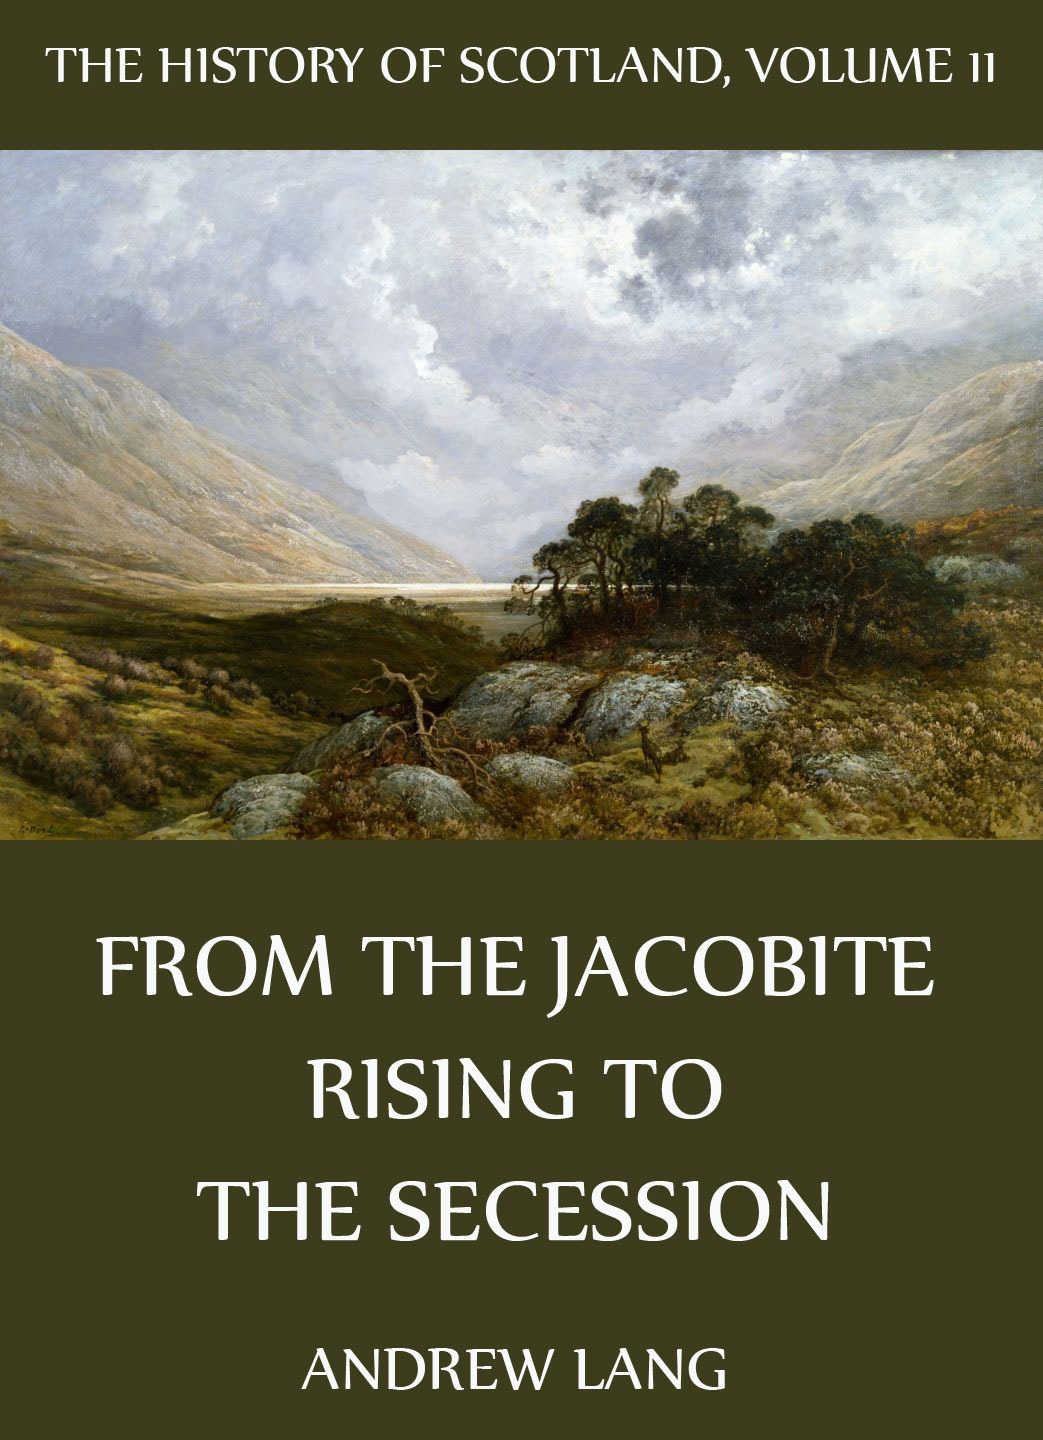 Andrew Lang The History Of Scotland - Volume 11: From The Jacobite Rising To The Secession sean lang european history for dummies